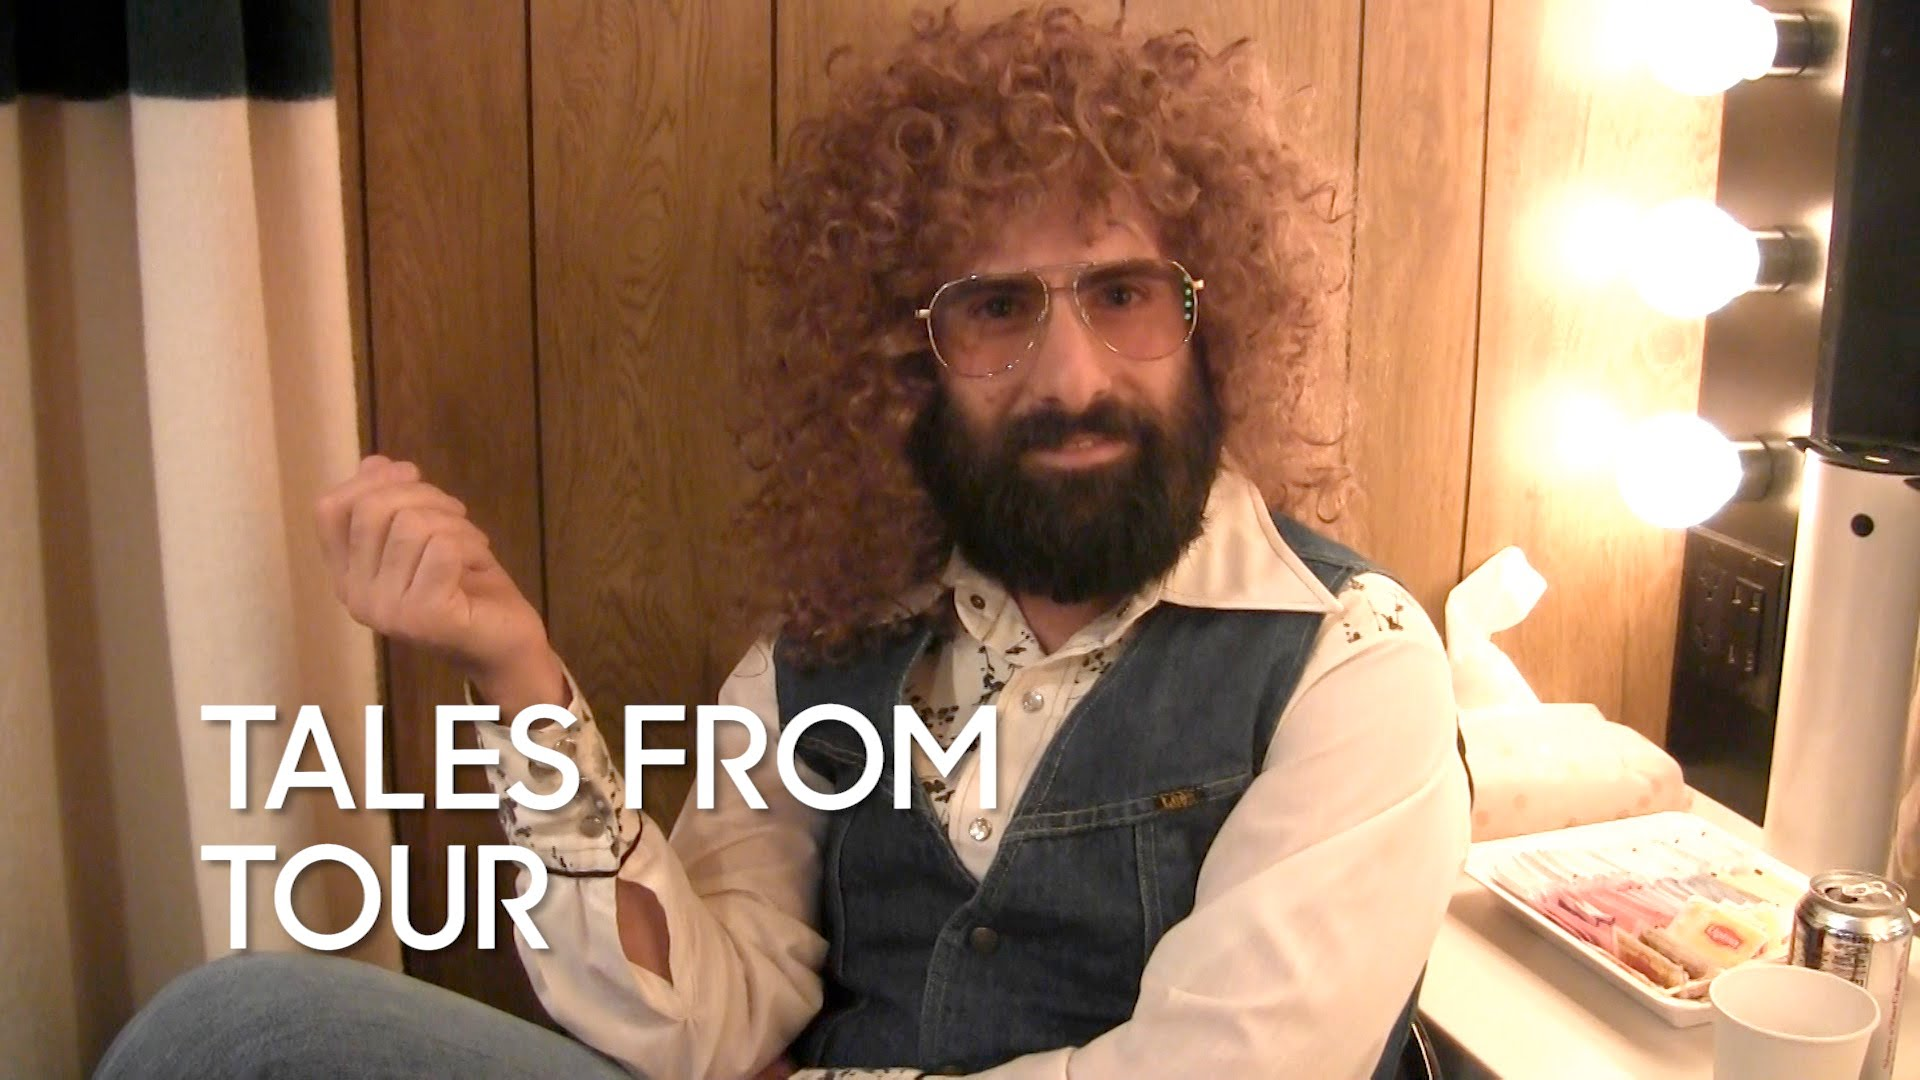 Watch Late Night with Jimmy Fallon Season  - Tales from Tour: Tux Online